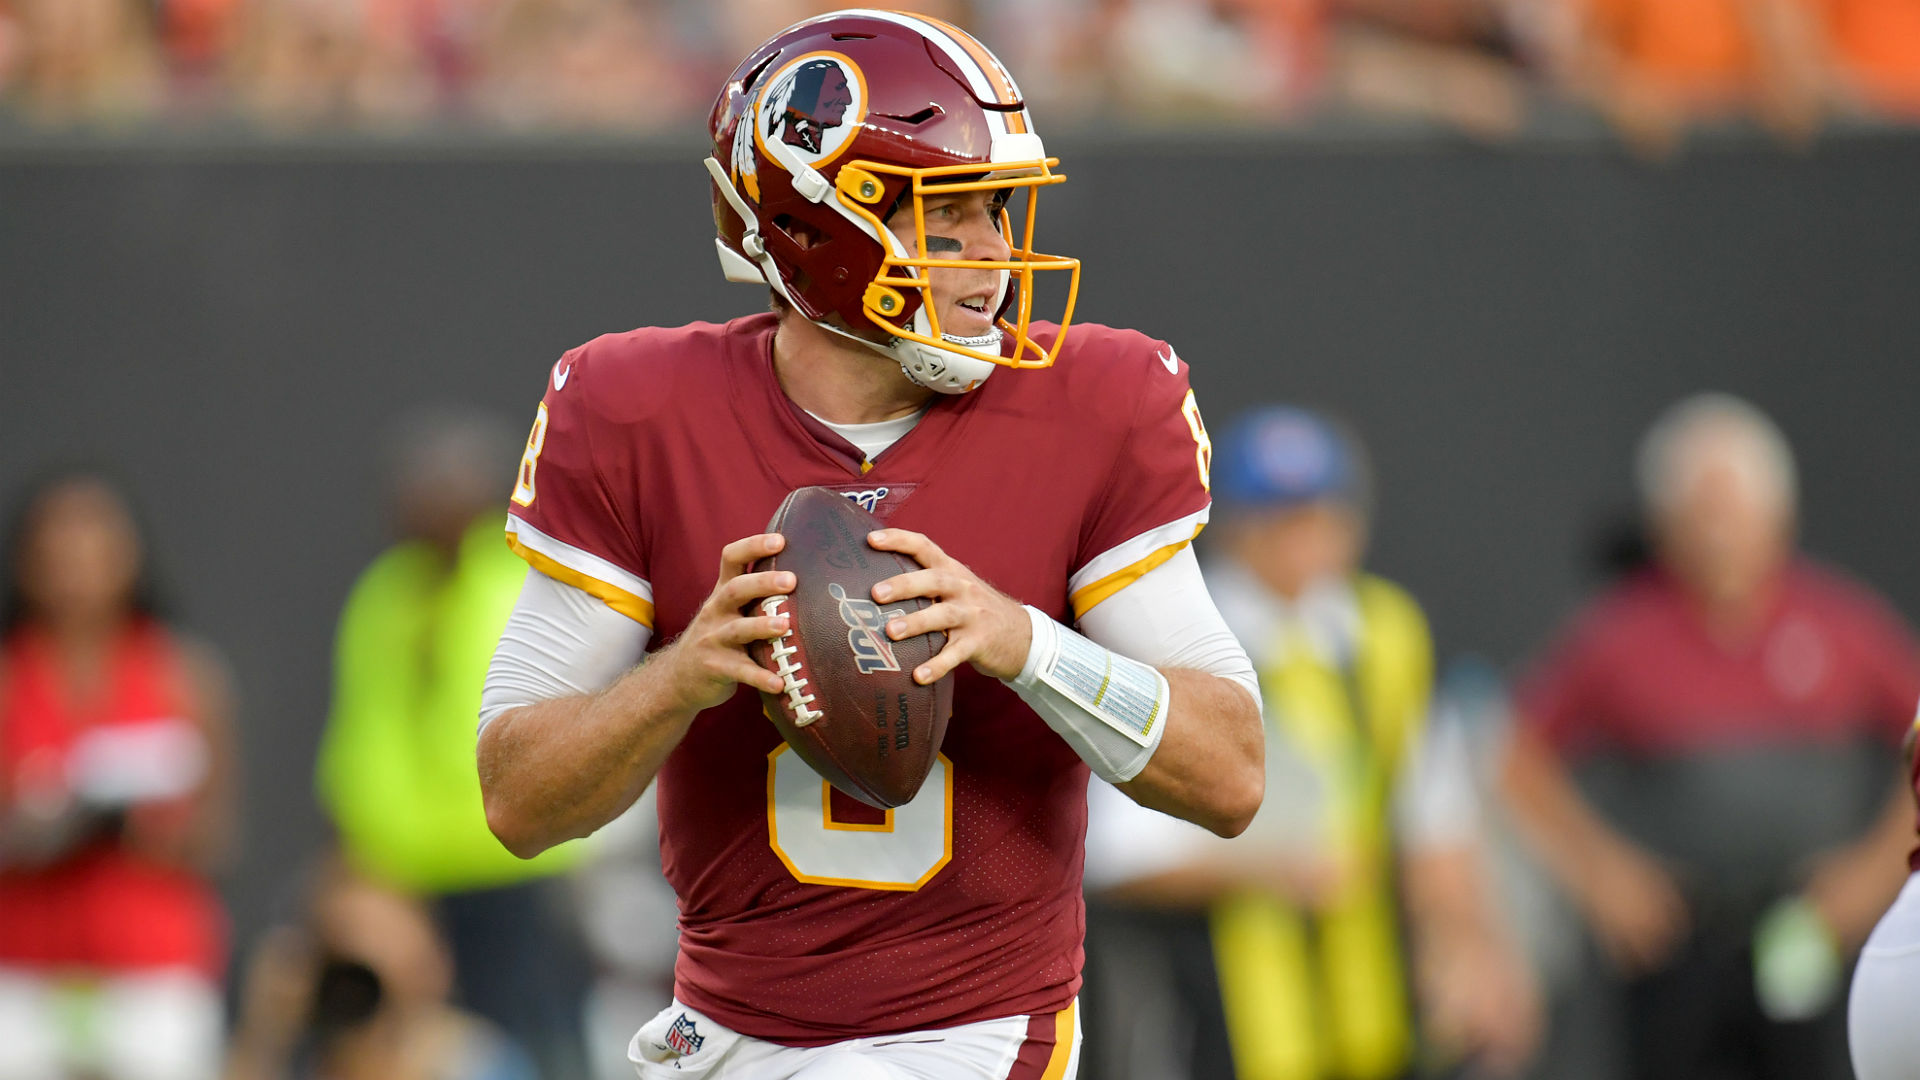 Redskins to start QB Case Keenum vs. Dolphins, report says